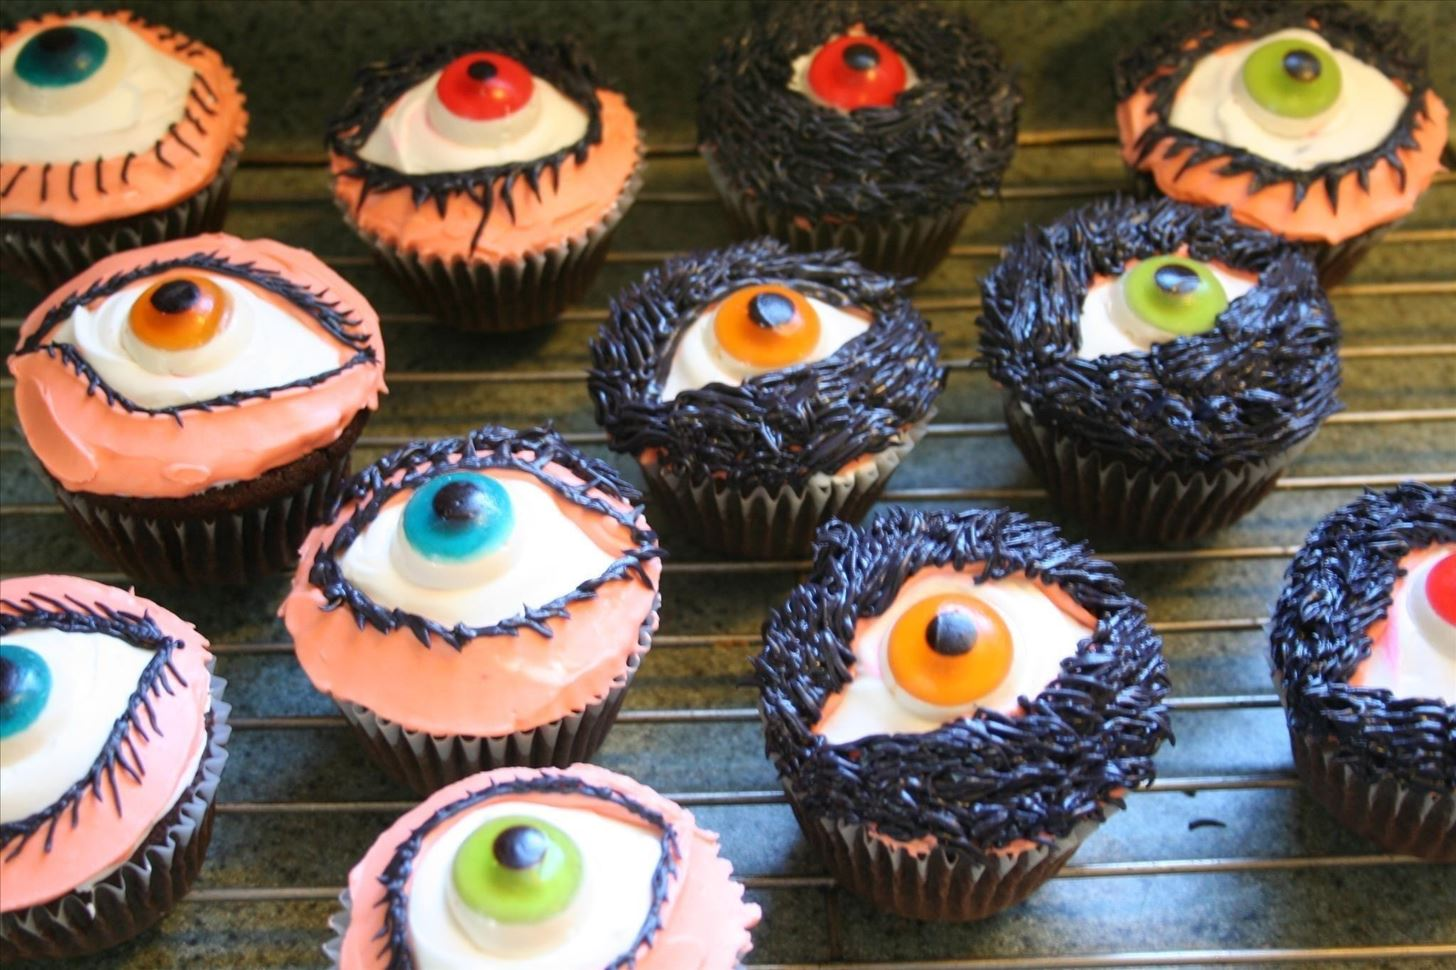 6unnerving eyeball cupcakes